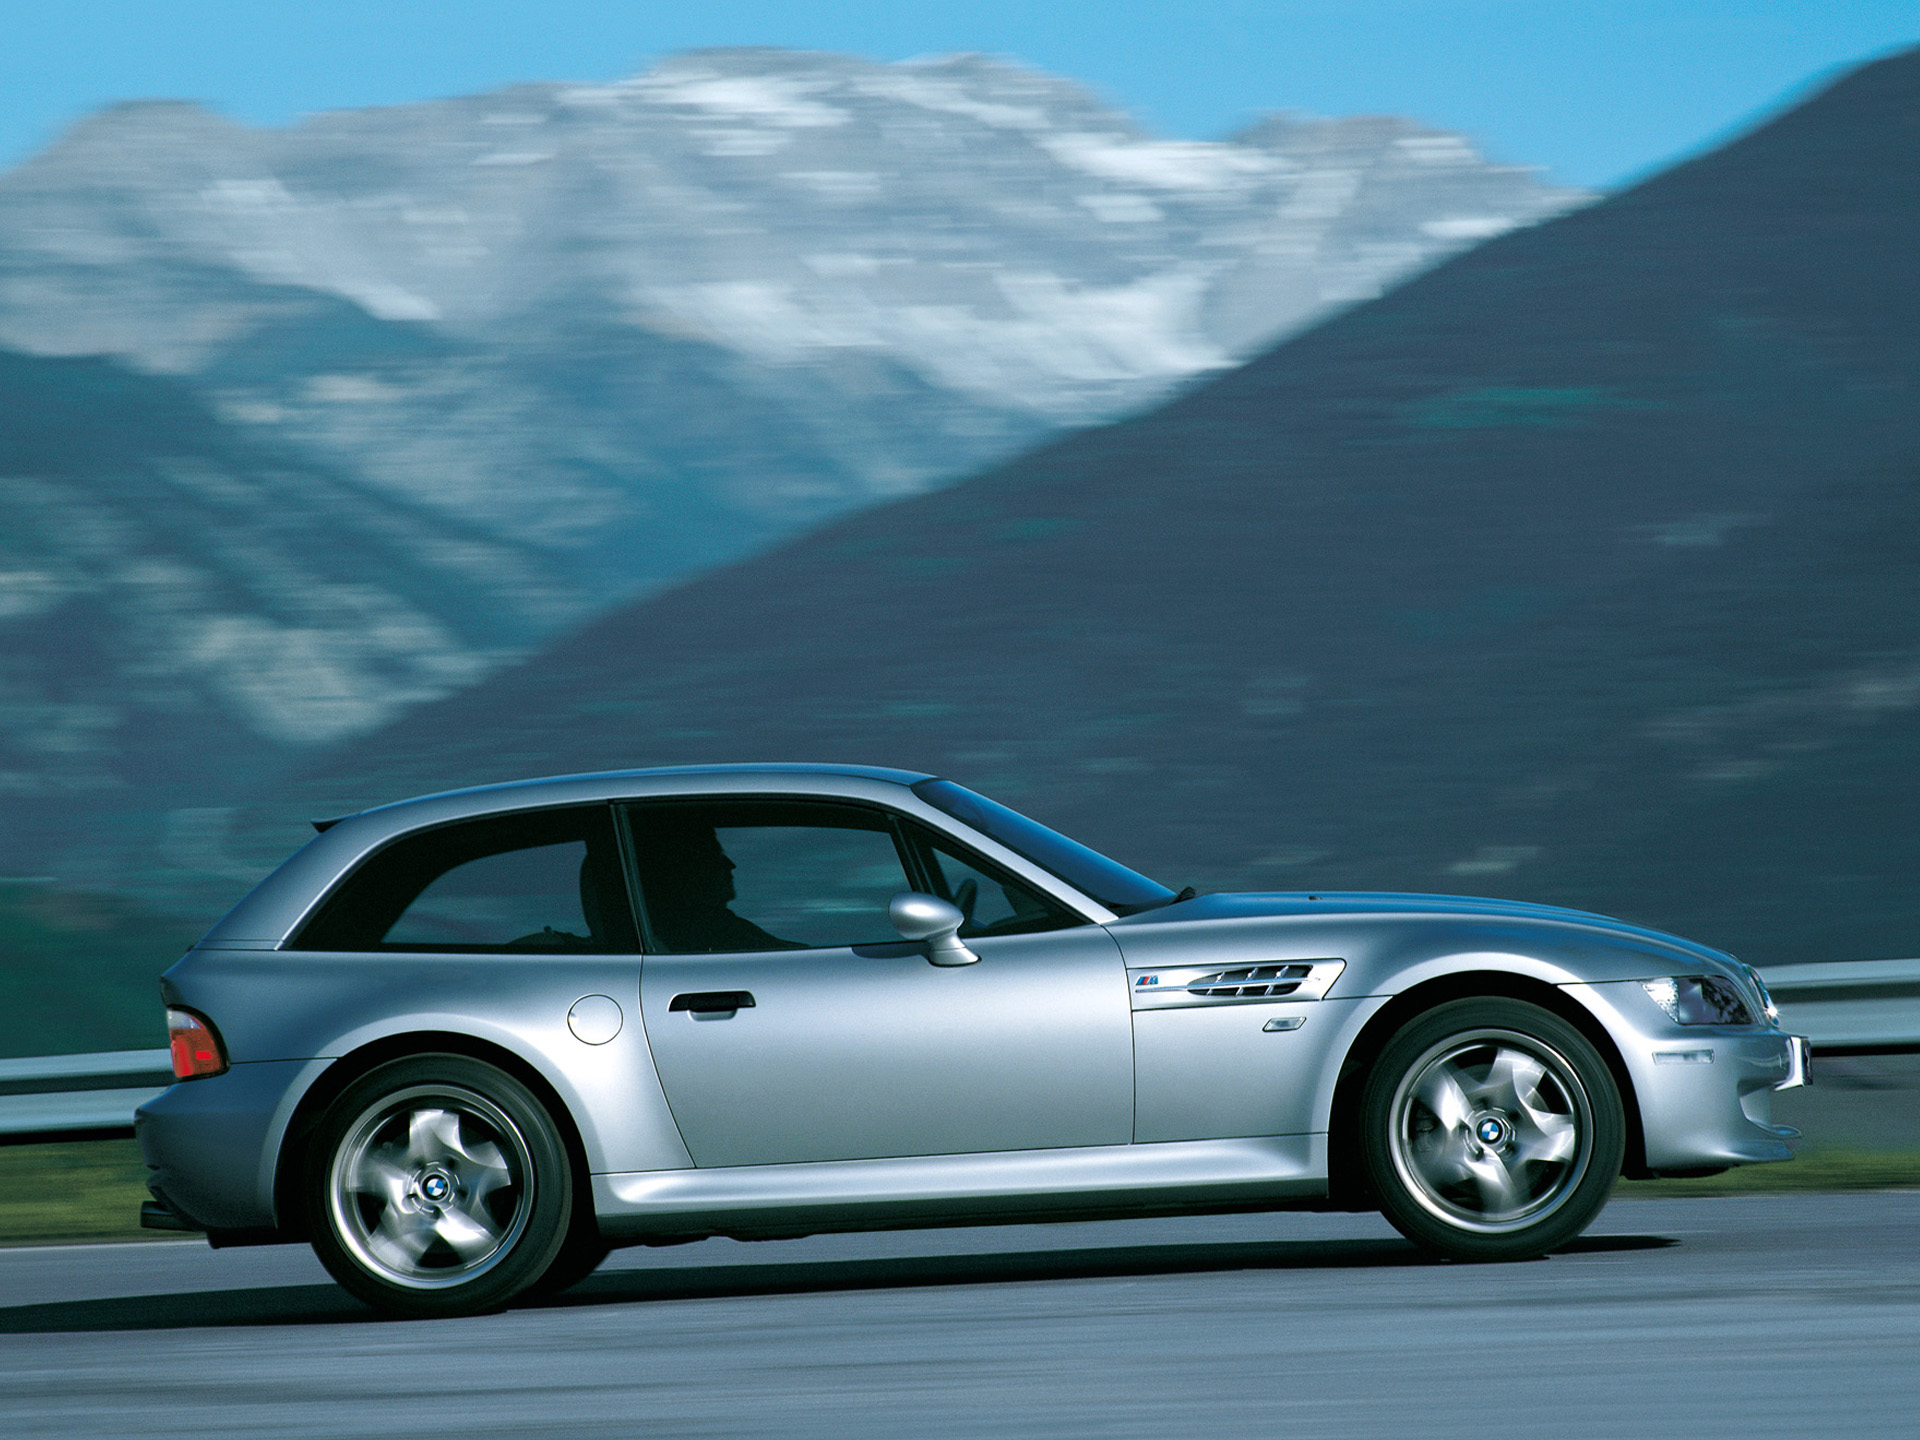 1999 BMW M Coupe Wallpapers | SuperCars.net - Today's ...